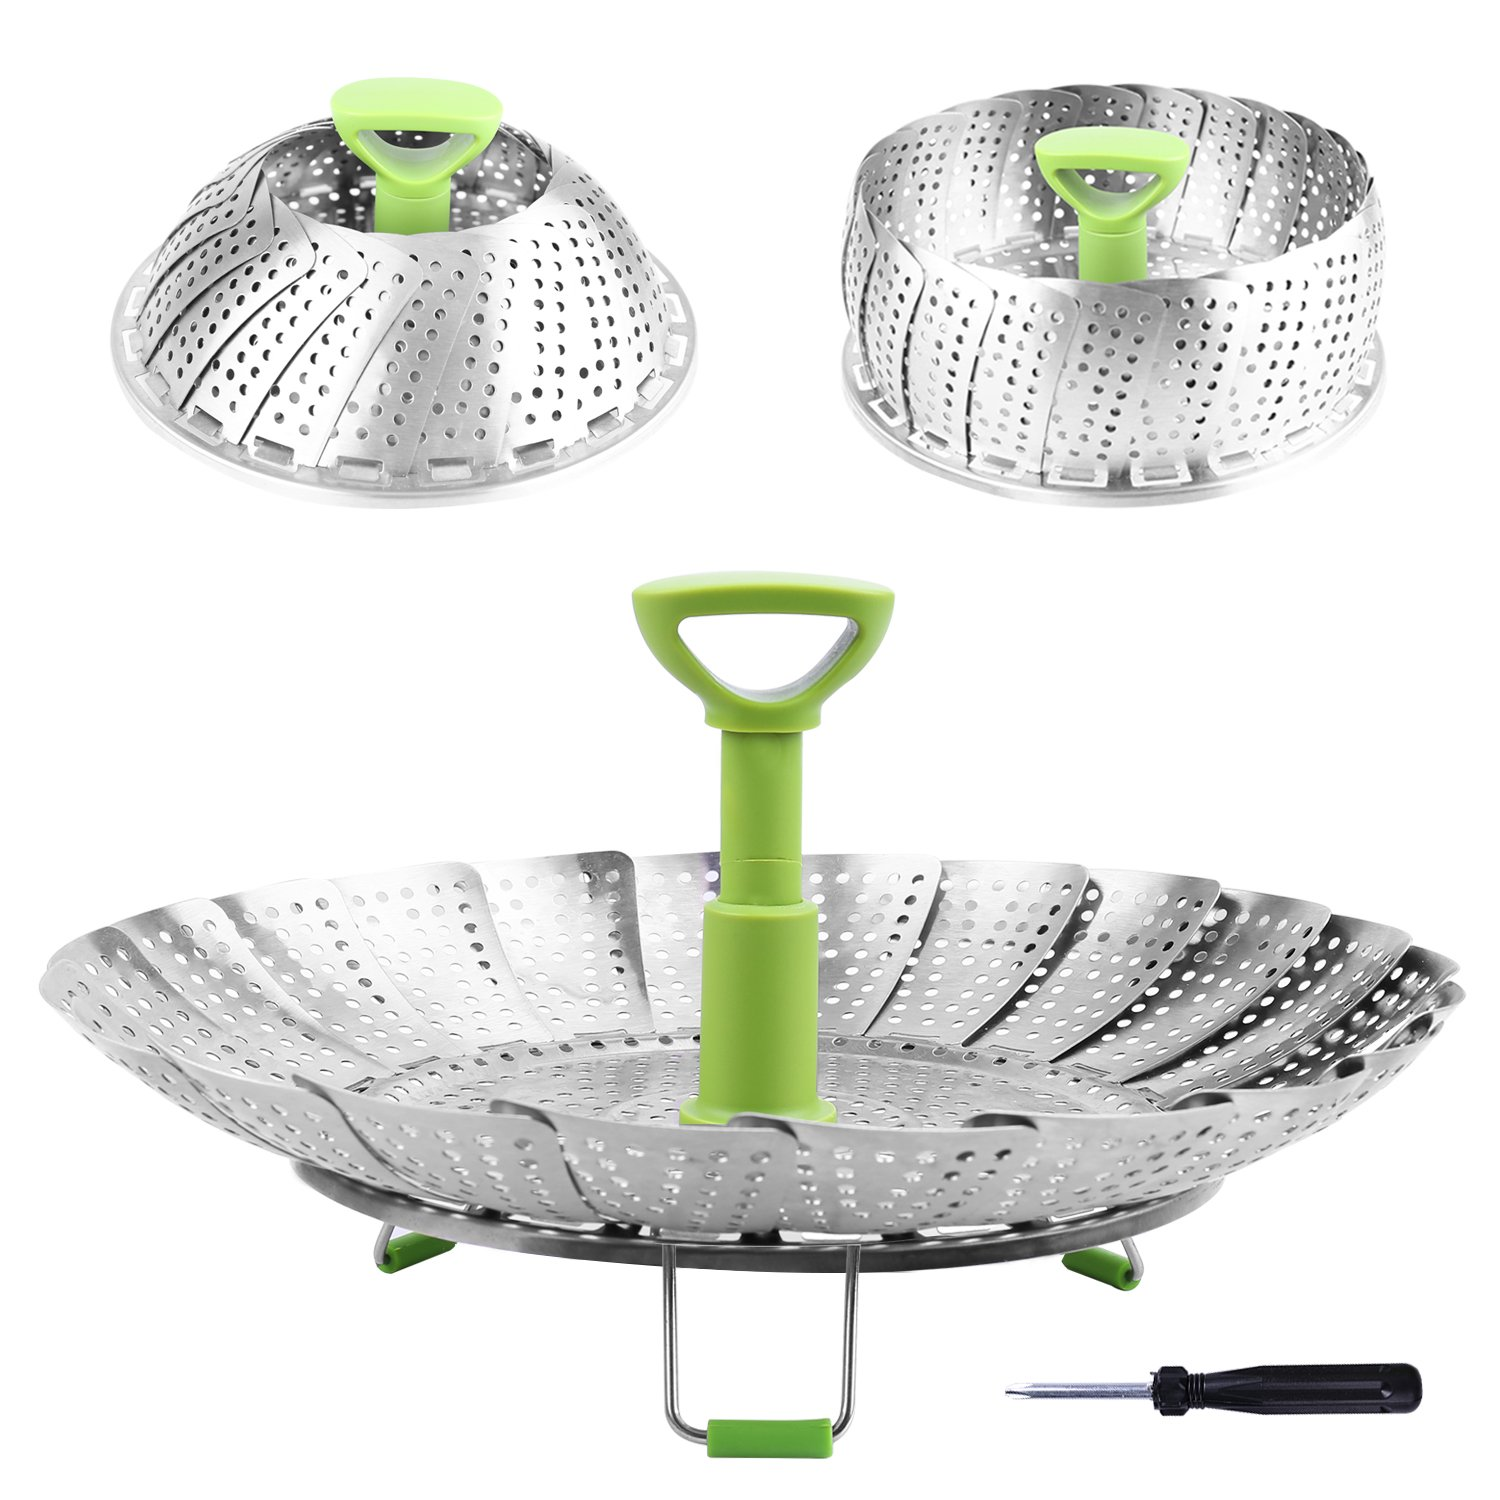 Steamer Basket Stainless Steel Vegetable Steamer Basket Folding Steamer Insert for Veggie Fish Seafood Cooking, Expandable to Fit Various Size Pot (5.1'' to 9'')